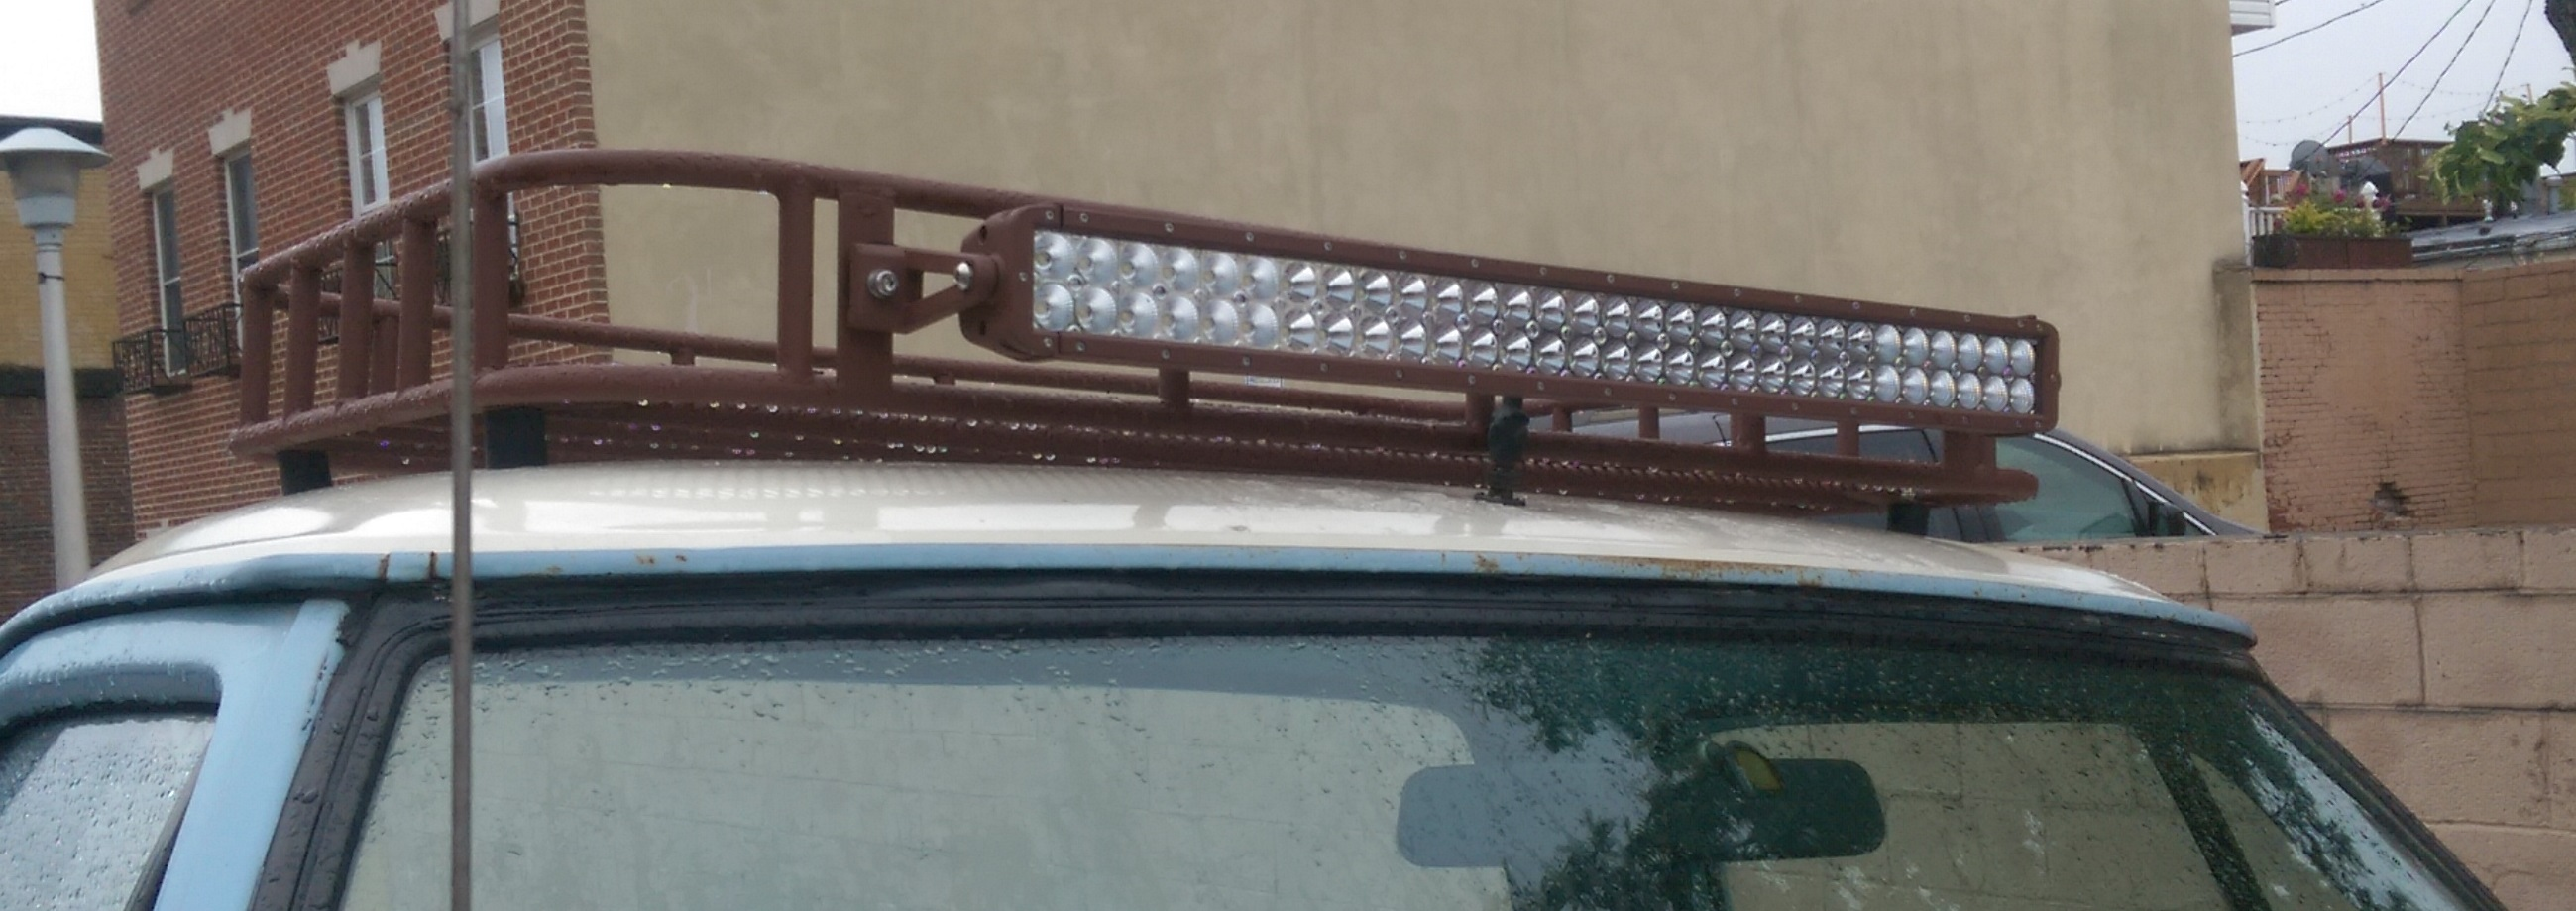 Balkenbefestigung Boden Led Light Bar Mounts Dodge Ram Rough Country 39s 20 Quot Single